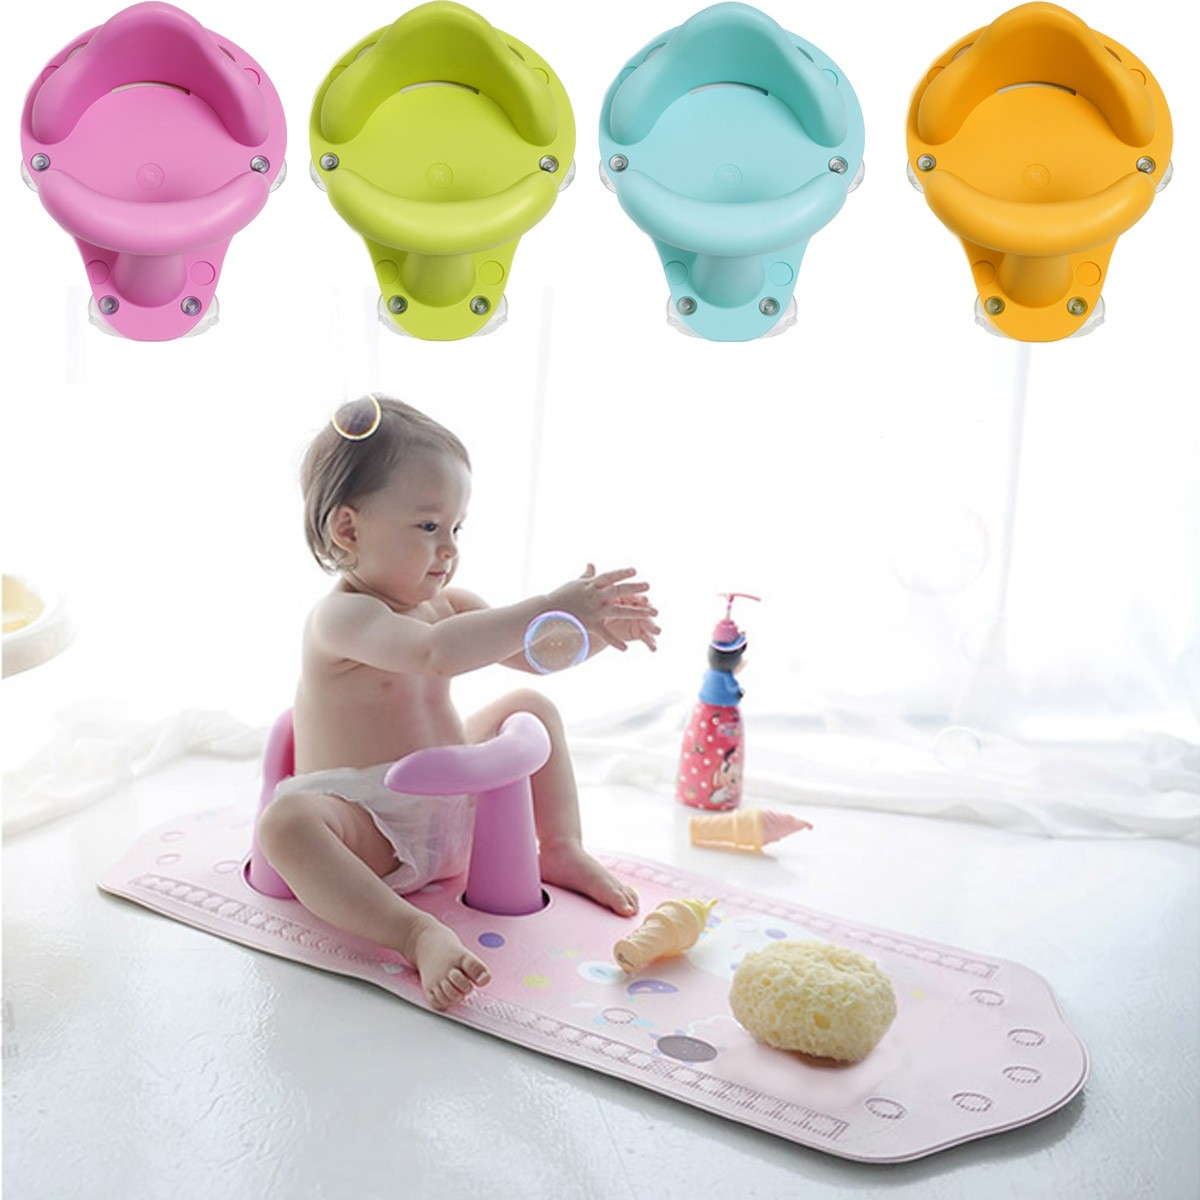 Nonslip Baby Infant Kids Toddler Bath Seat Ring Safety Comfort Chair ...